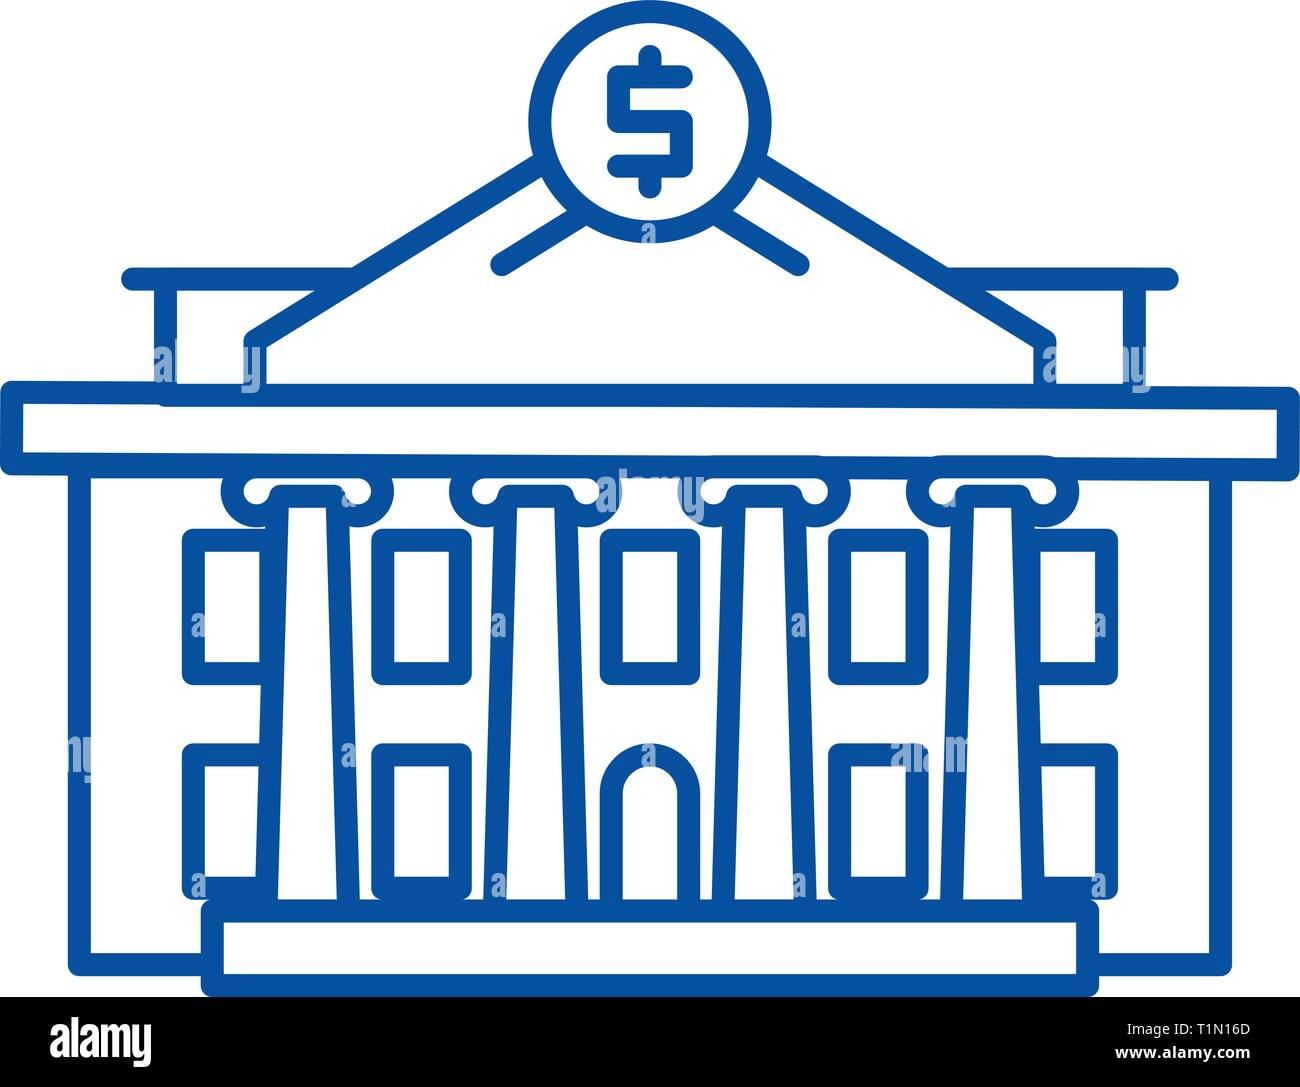 Financial institution line icon concept. Financial institution flat  vector symbol, sign, outline illustration. - Stock Vector